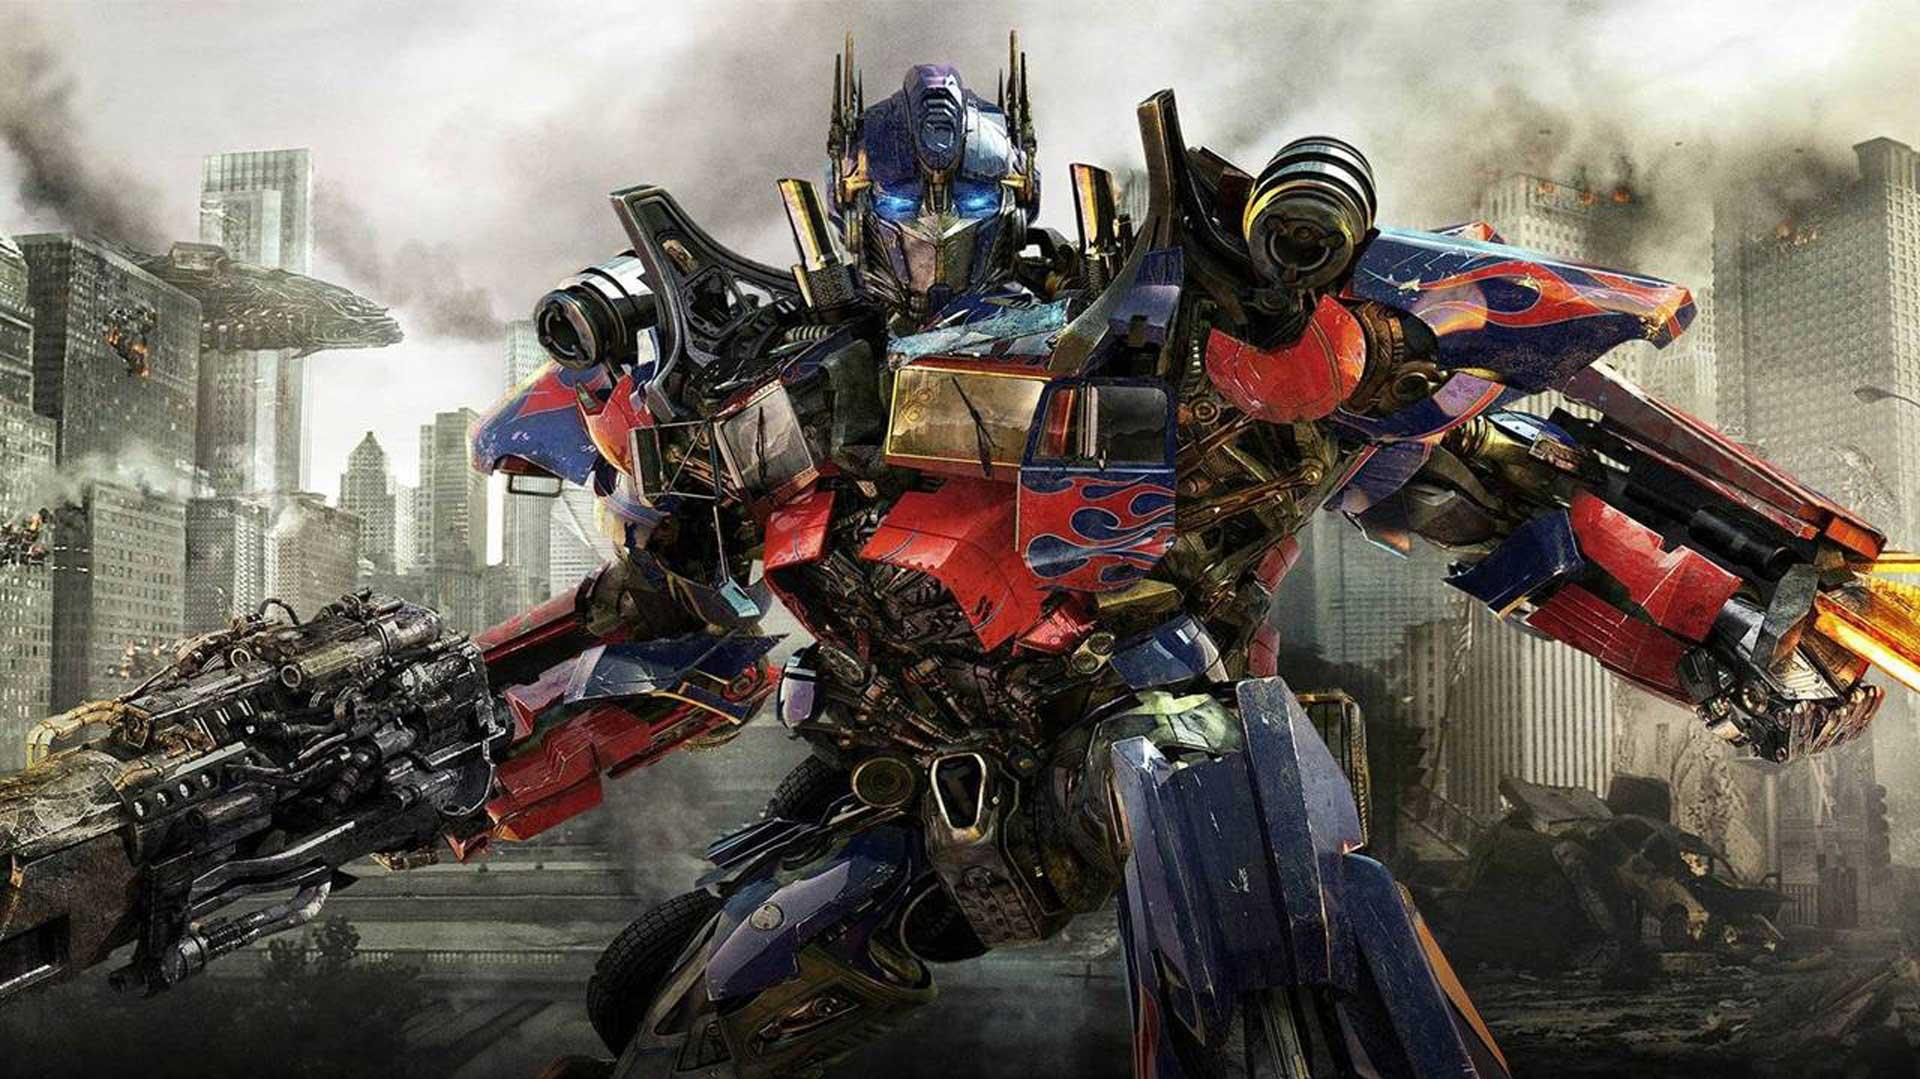 In defense of the Razzie-nominated 'Transformers' movie